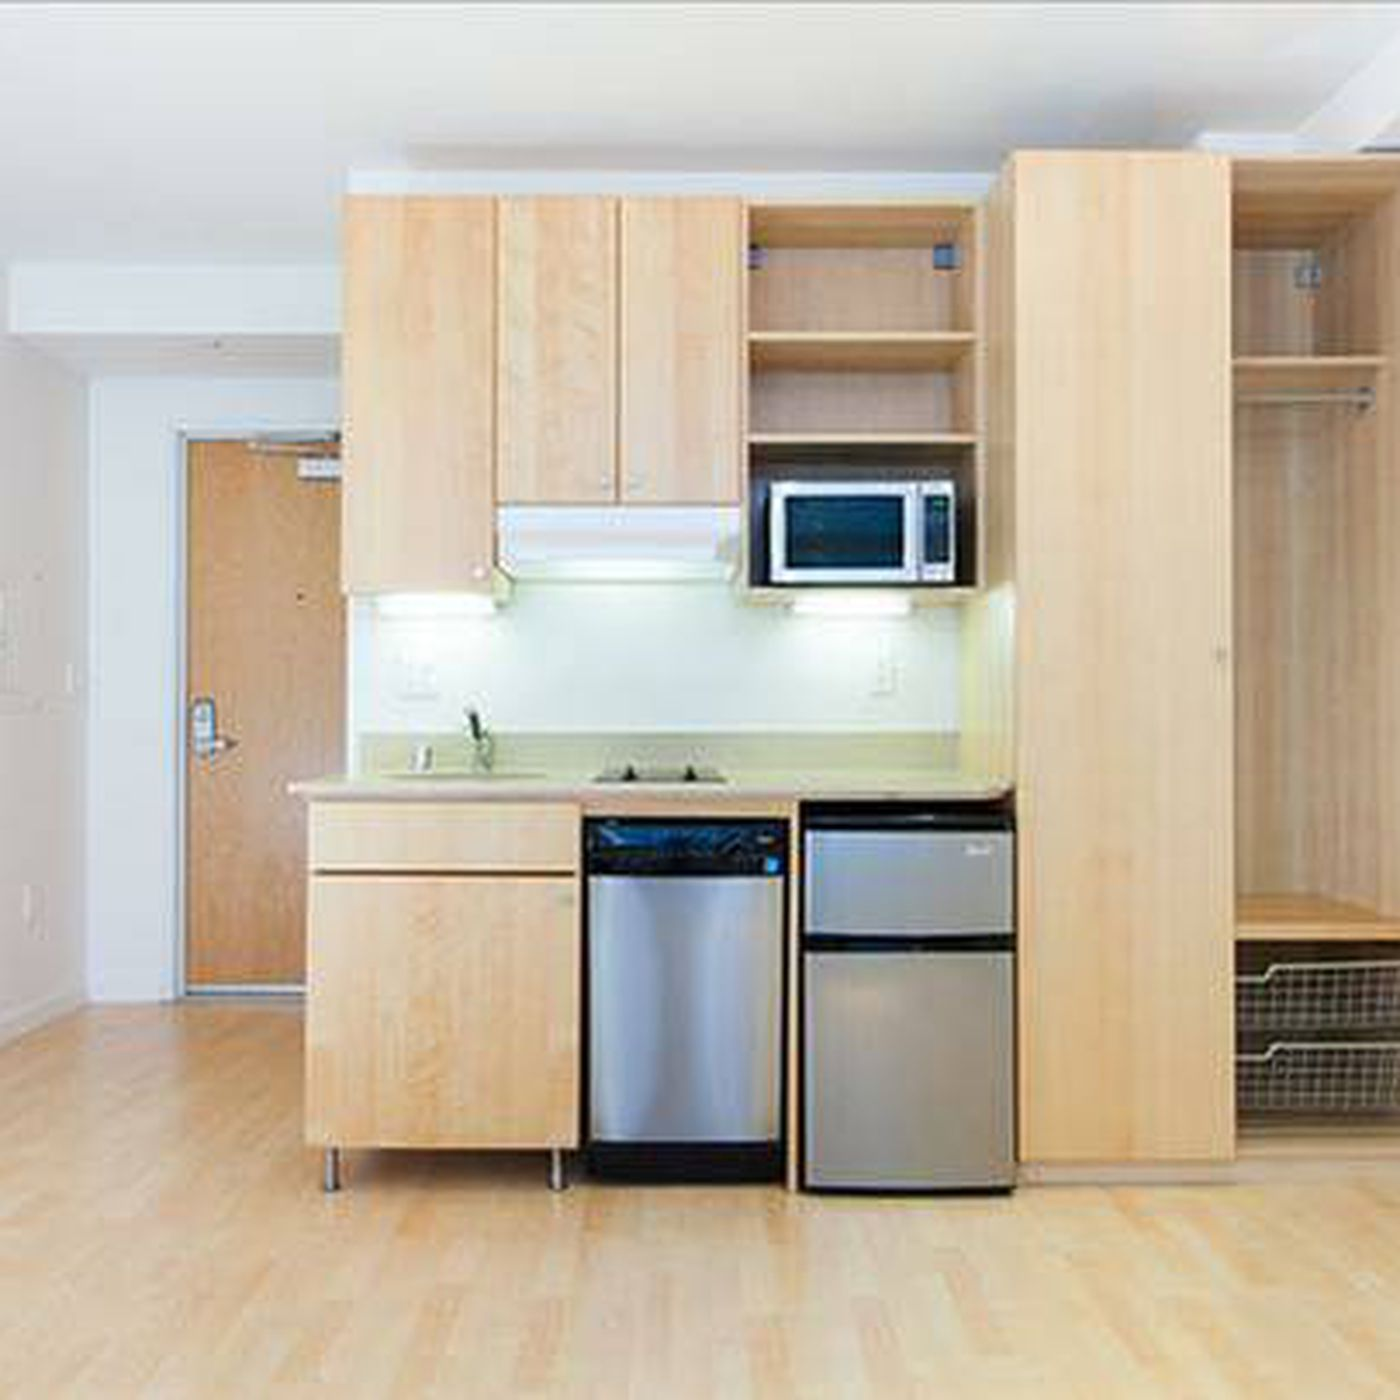 The Smallest Apartment For Rent In Sf Is Just 233 Square Feet Curbed